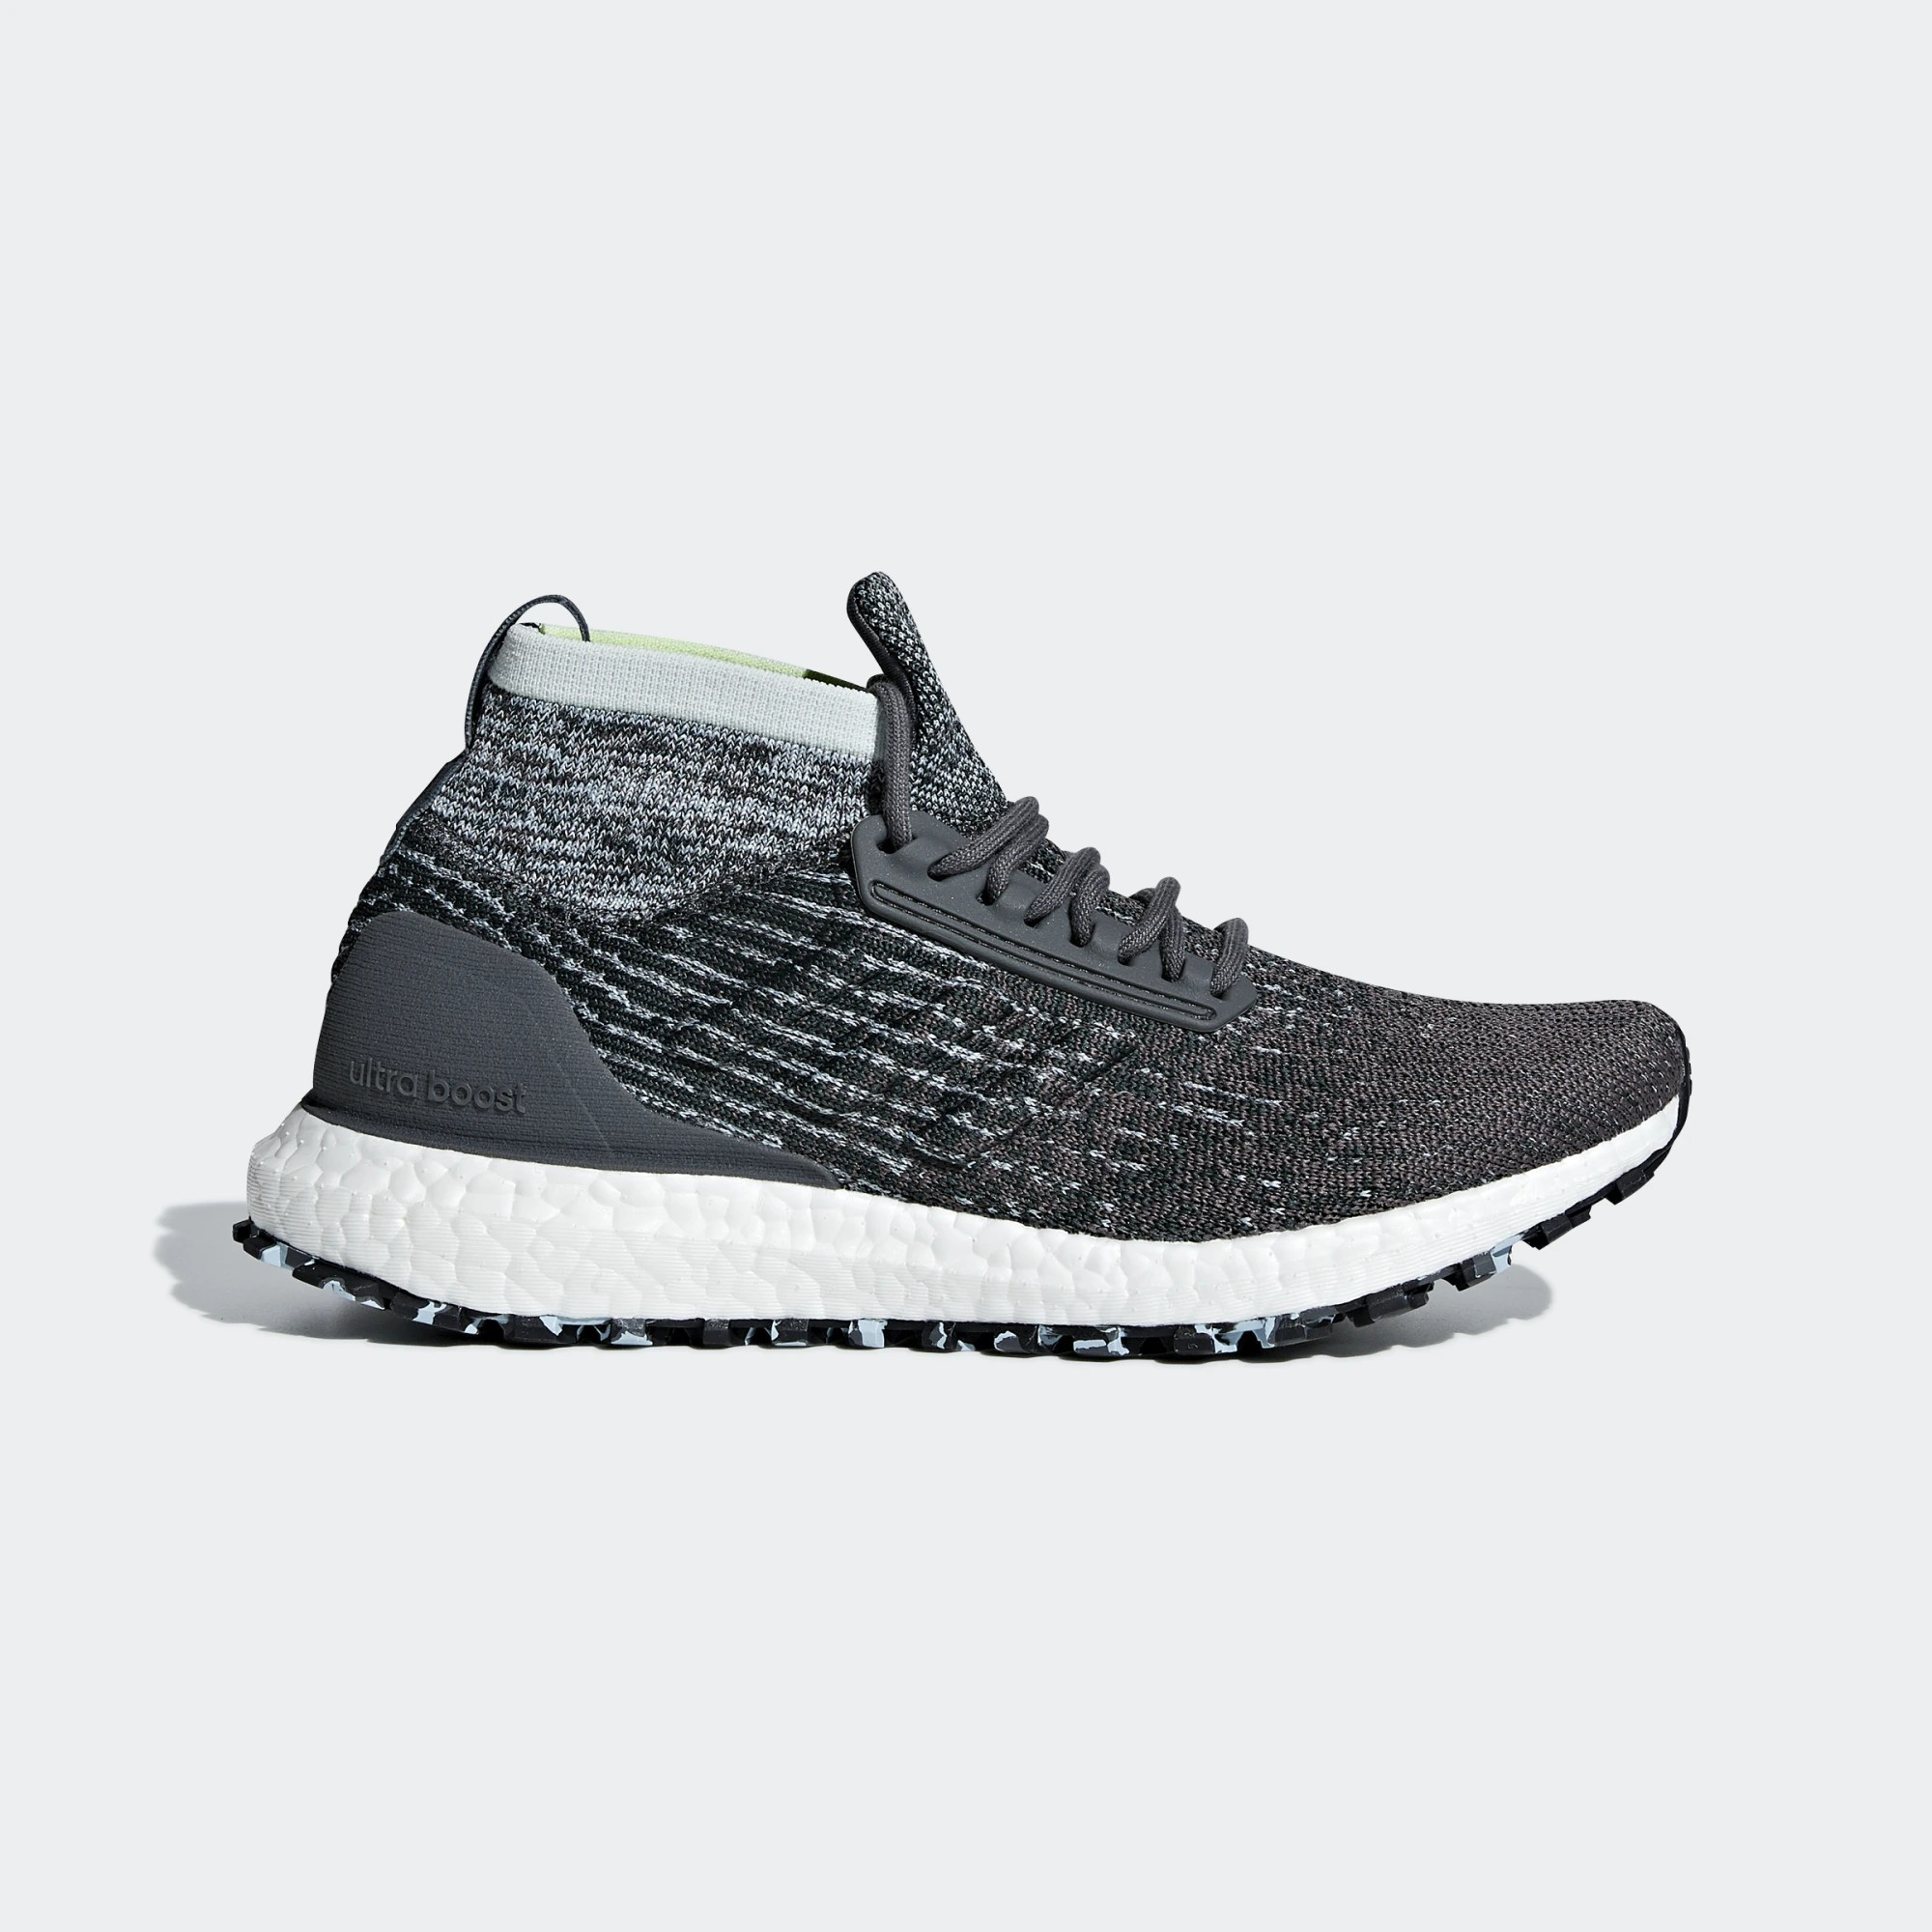 Adidas Womens Running Ultraboost All Terrain Shoes F36129 Grey